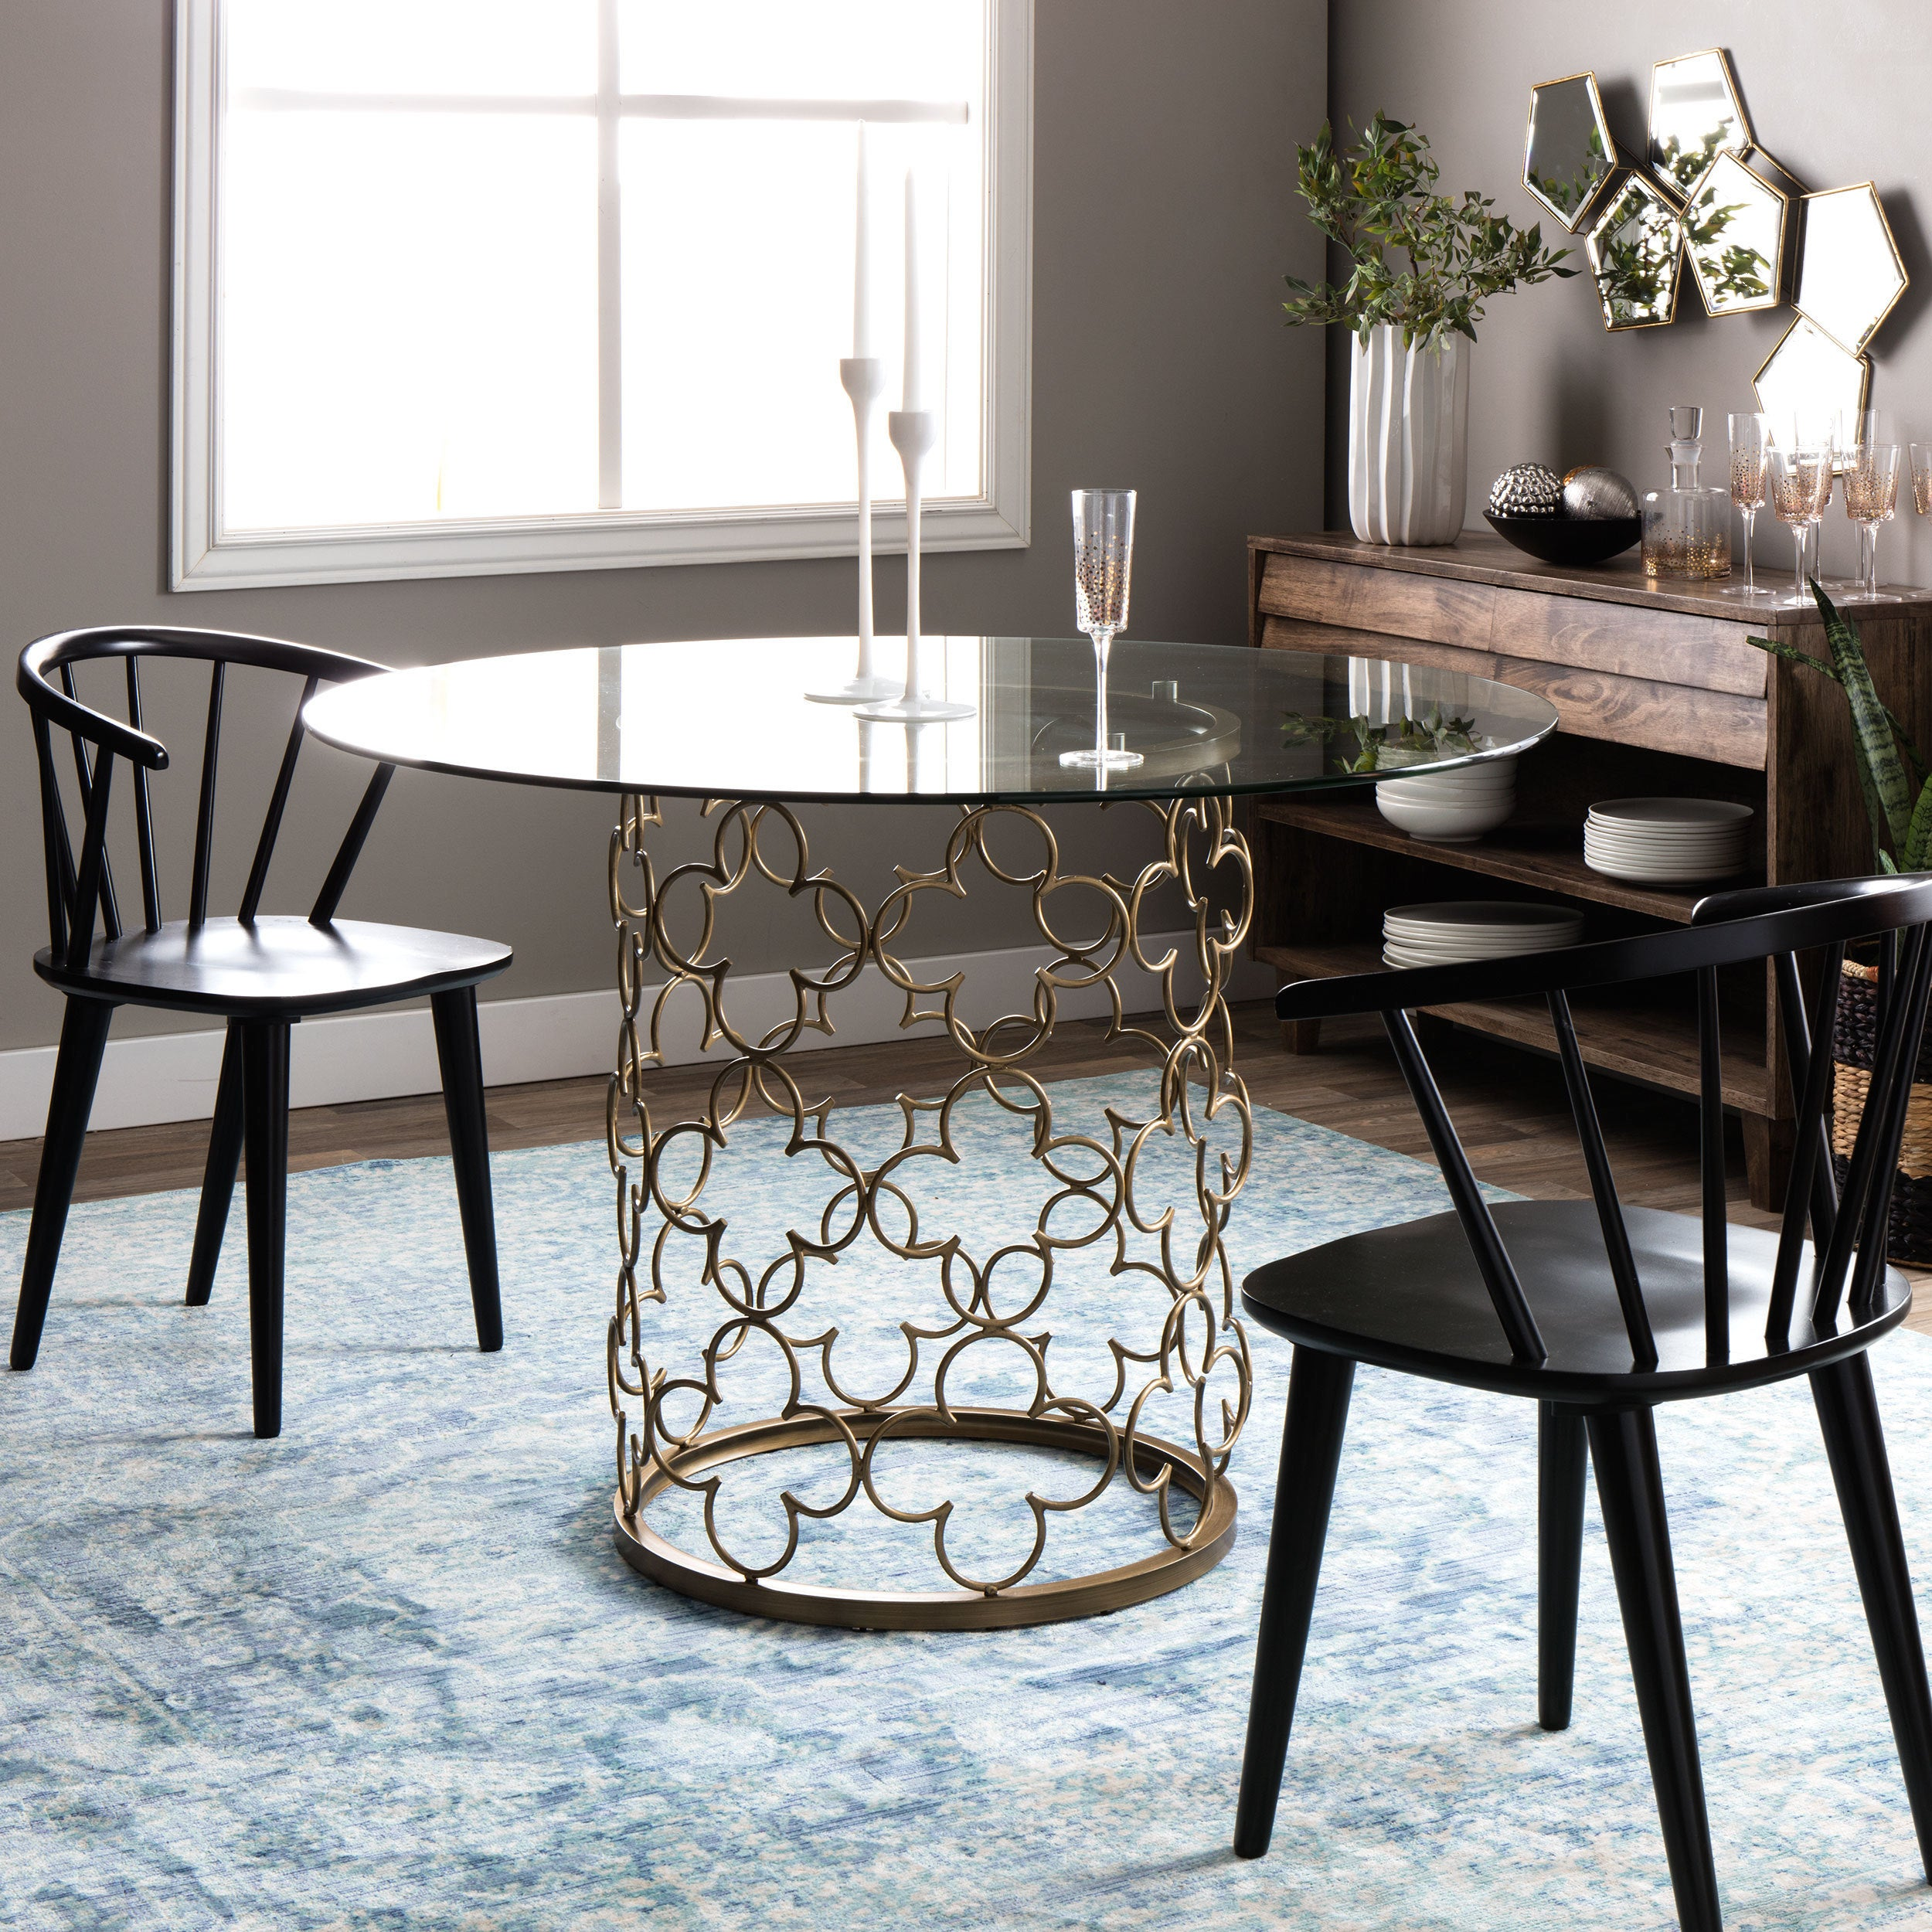 Details About Glass Dining Table Quatrefoil Brush Gold Metal Round Small  Kitchen Furniture